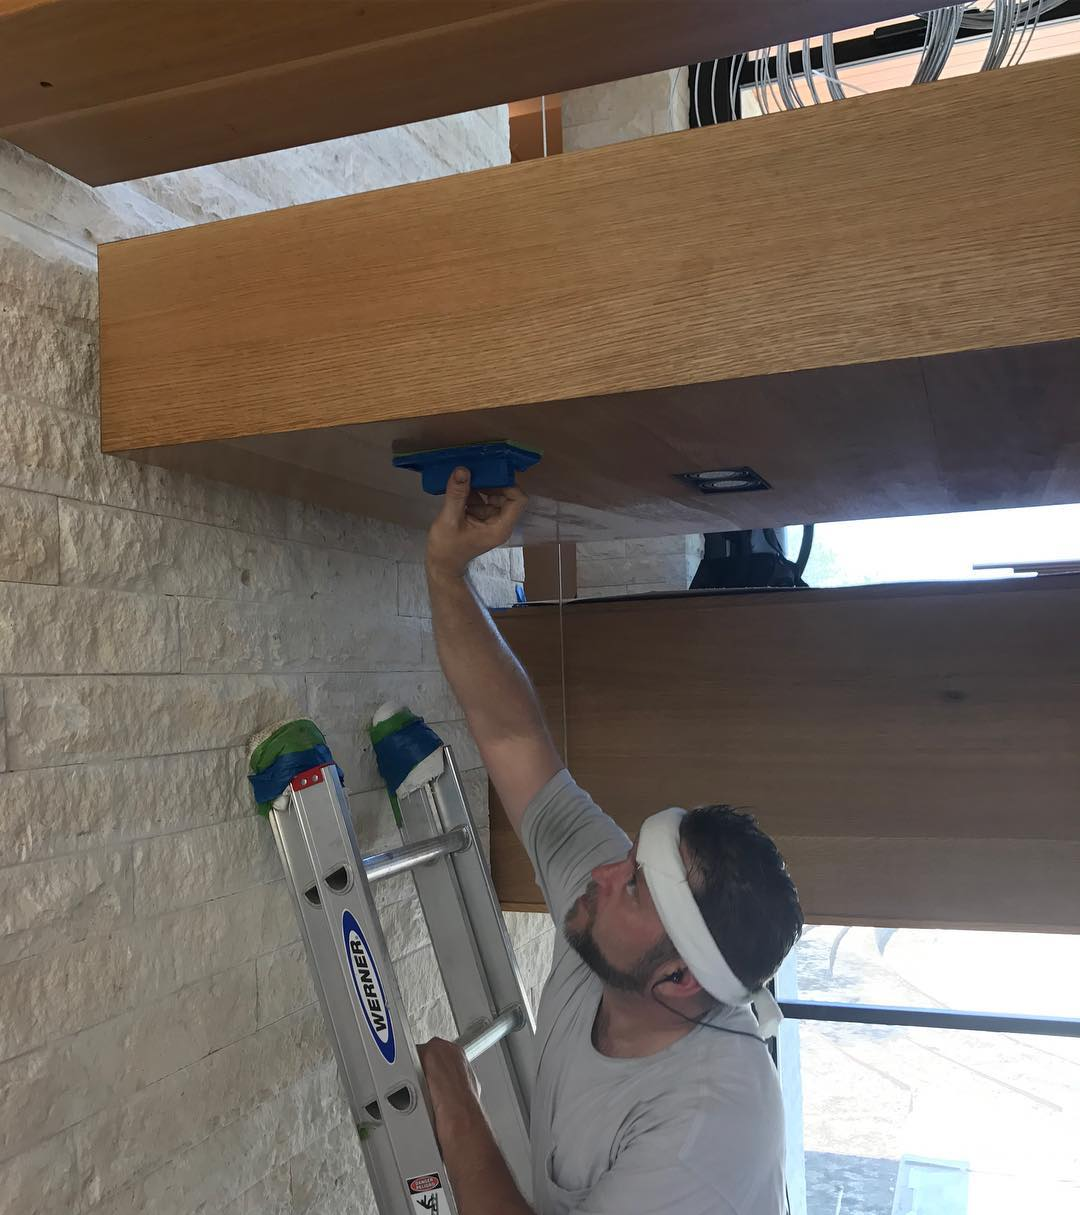 And now to hand finish the underside of the floating white oak stair treads. Built by @foursquarebuilders